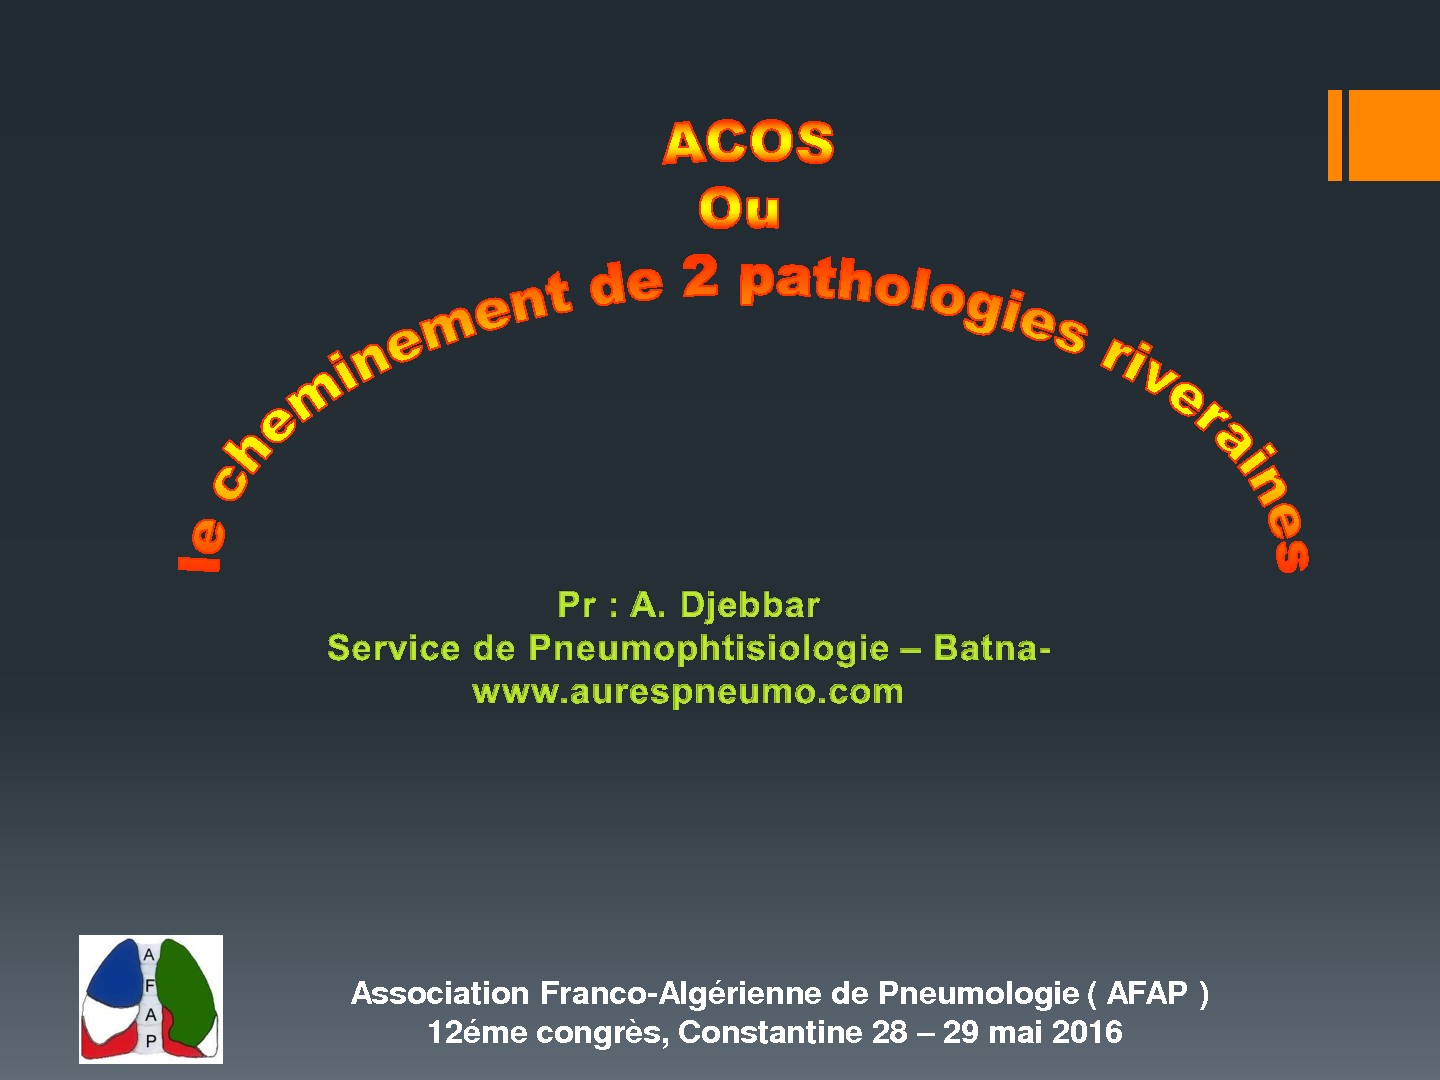 ACOS ou le cheminement de deux pathologies riveraines. A. Djebbar